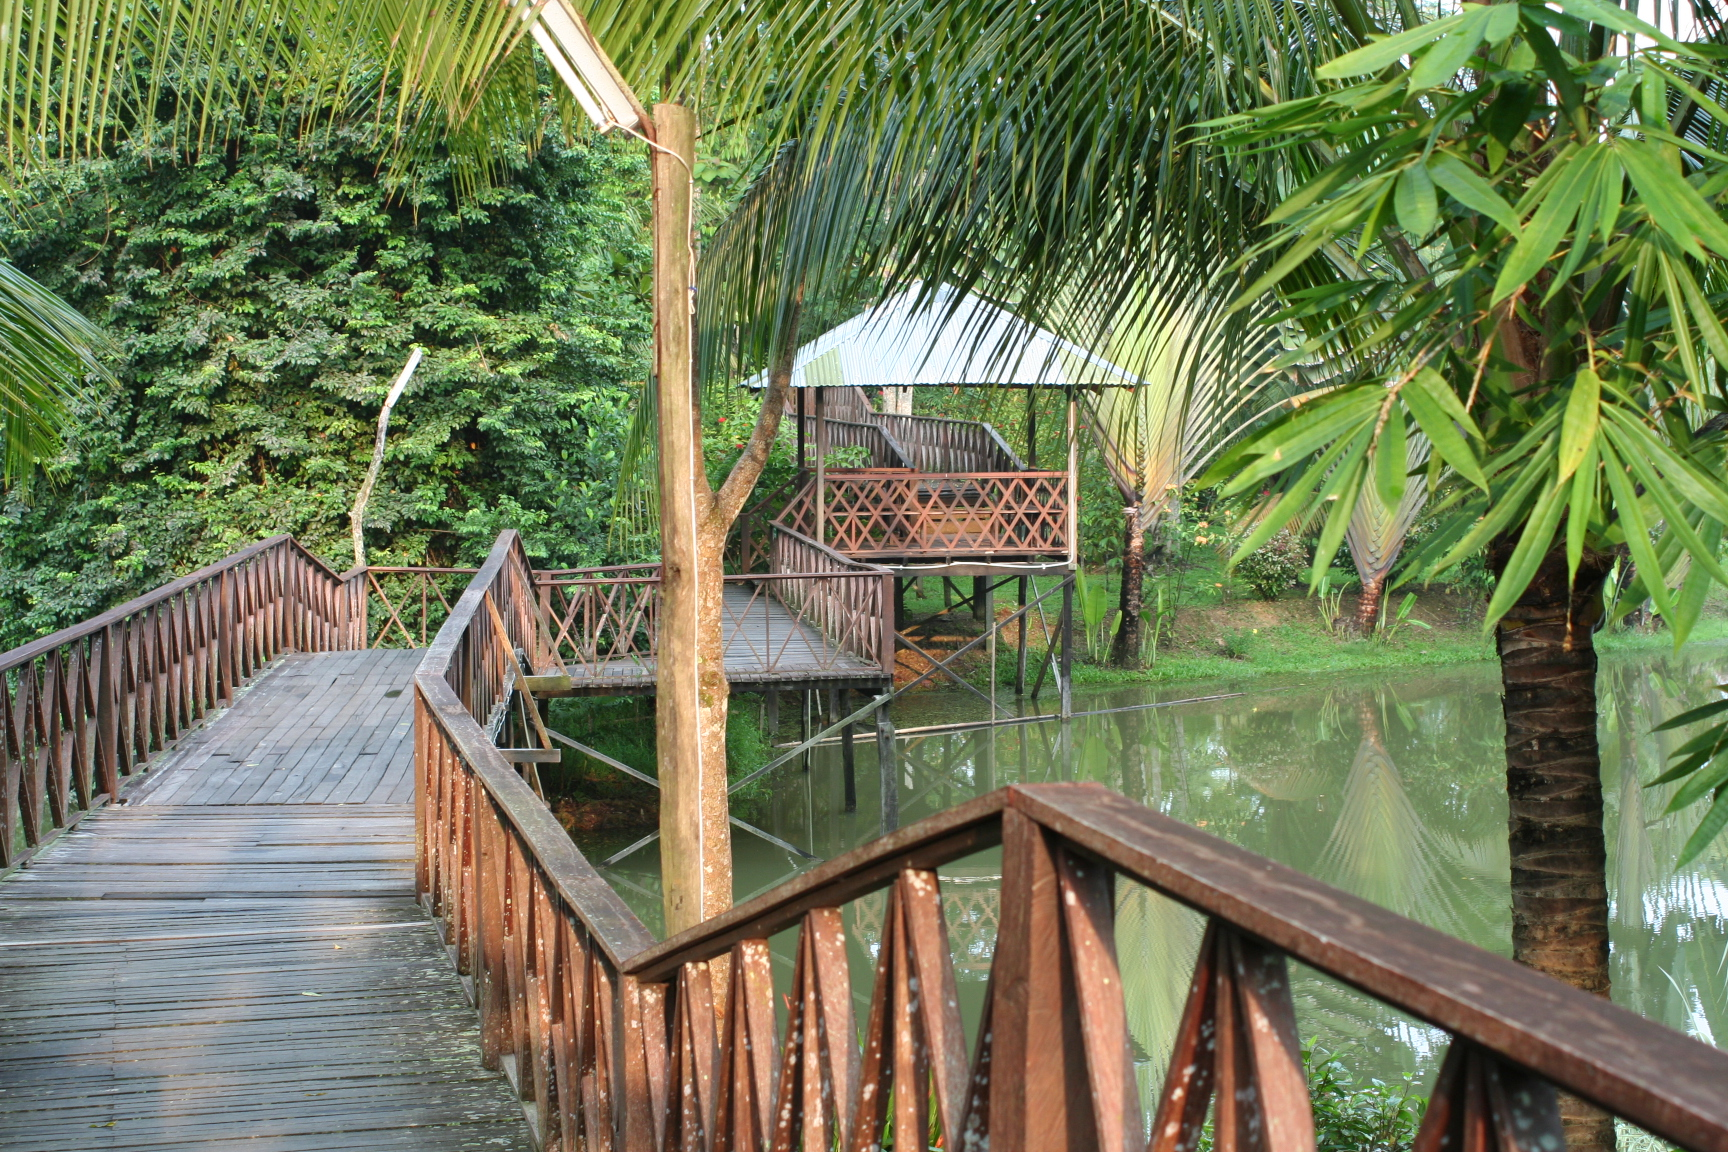 sepilok_jungle_resort_1275297206